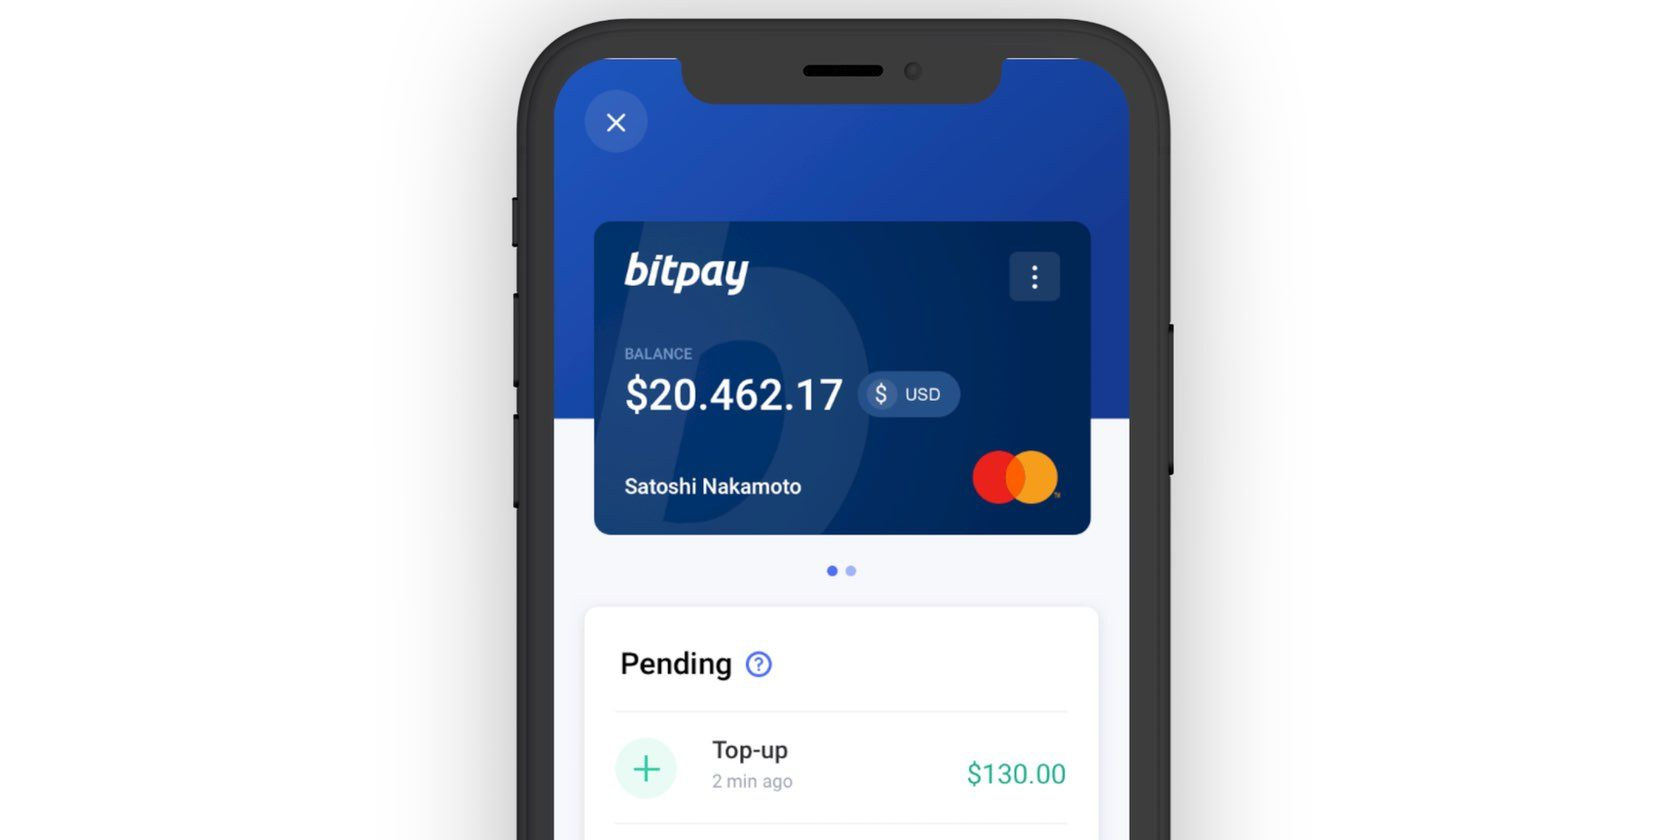 BitPay Brings Bitcoin to Apple Pay